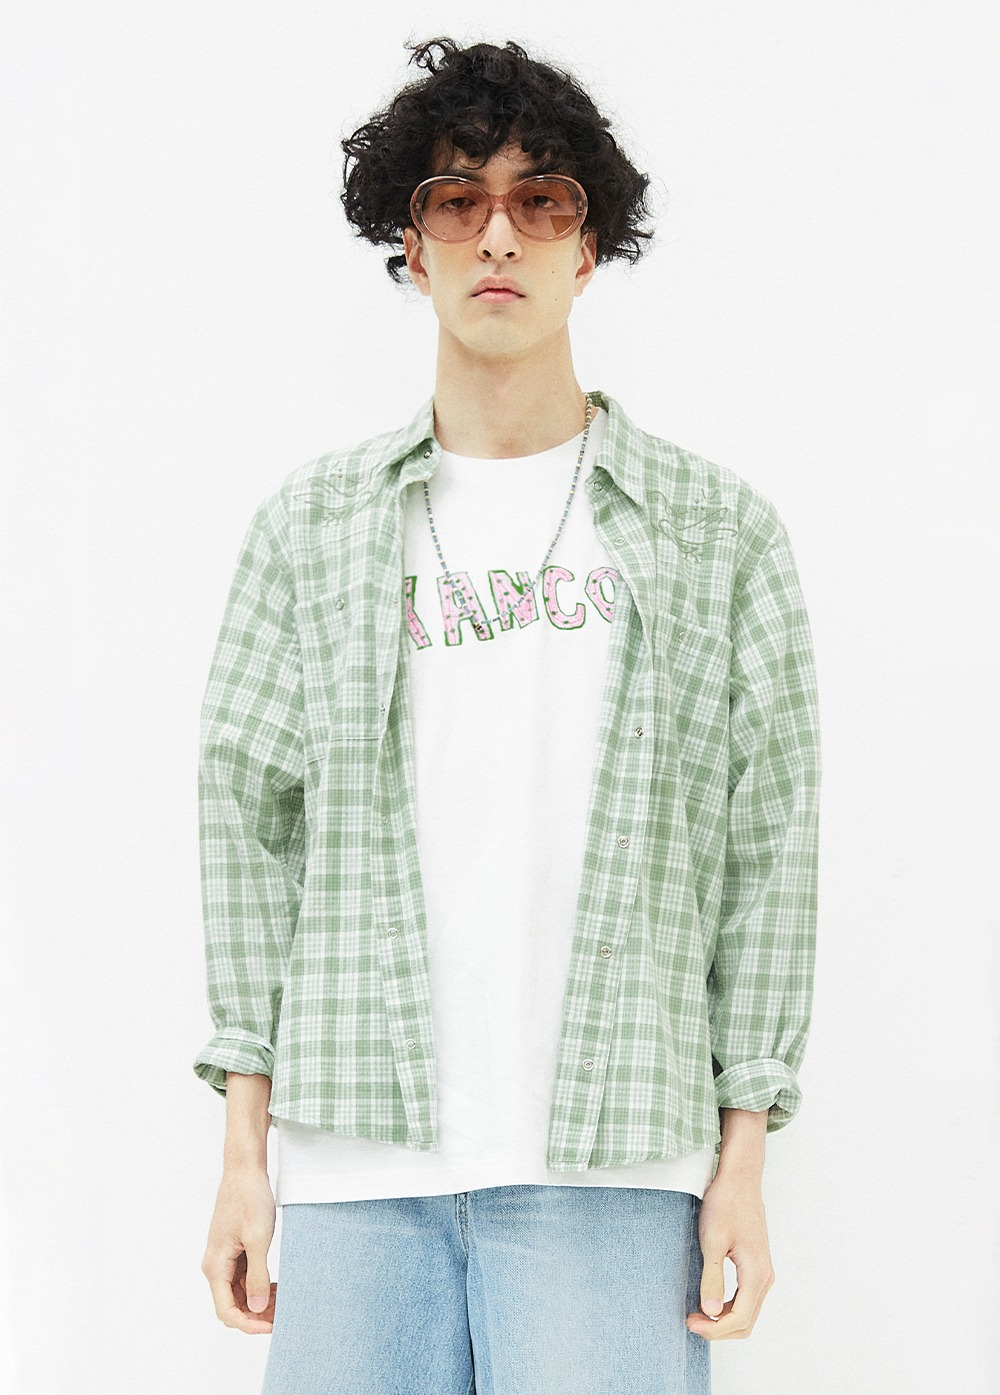 KANCO 2 POCKET CHECK SHIRT green